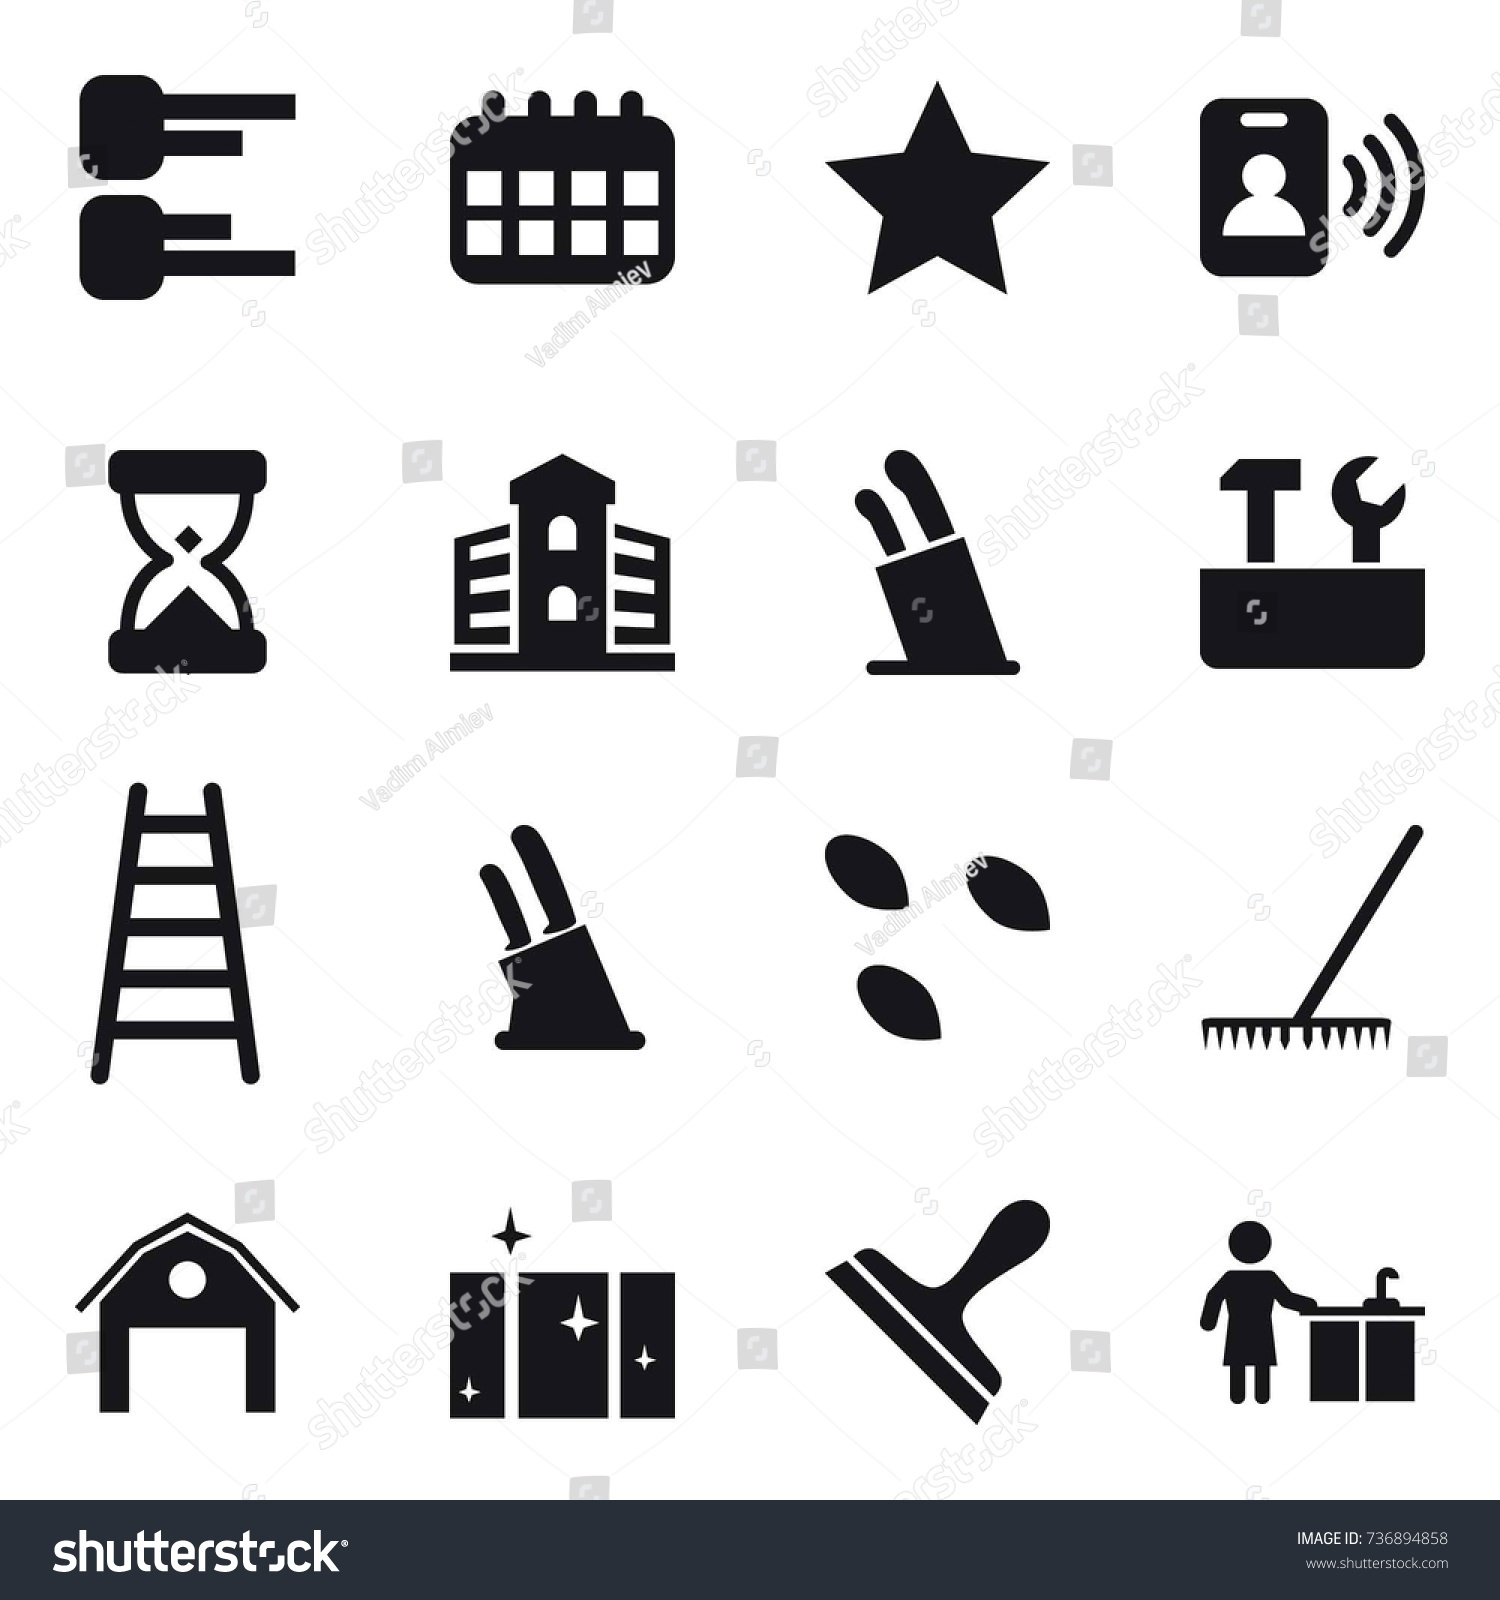 hight resolution of 16 vector icon set diagram calendar star pass card building stands for knives repair tools stairs knife holder seeds rake barn clean window